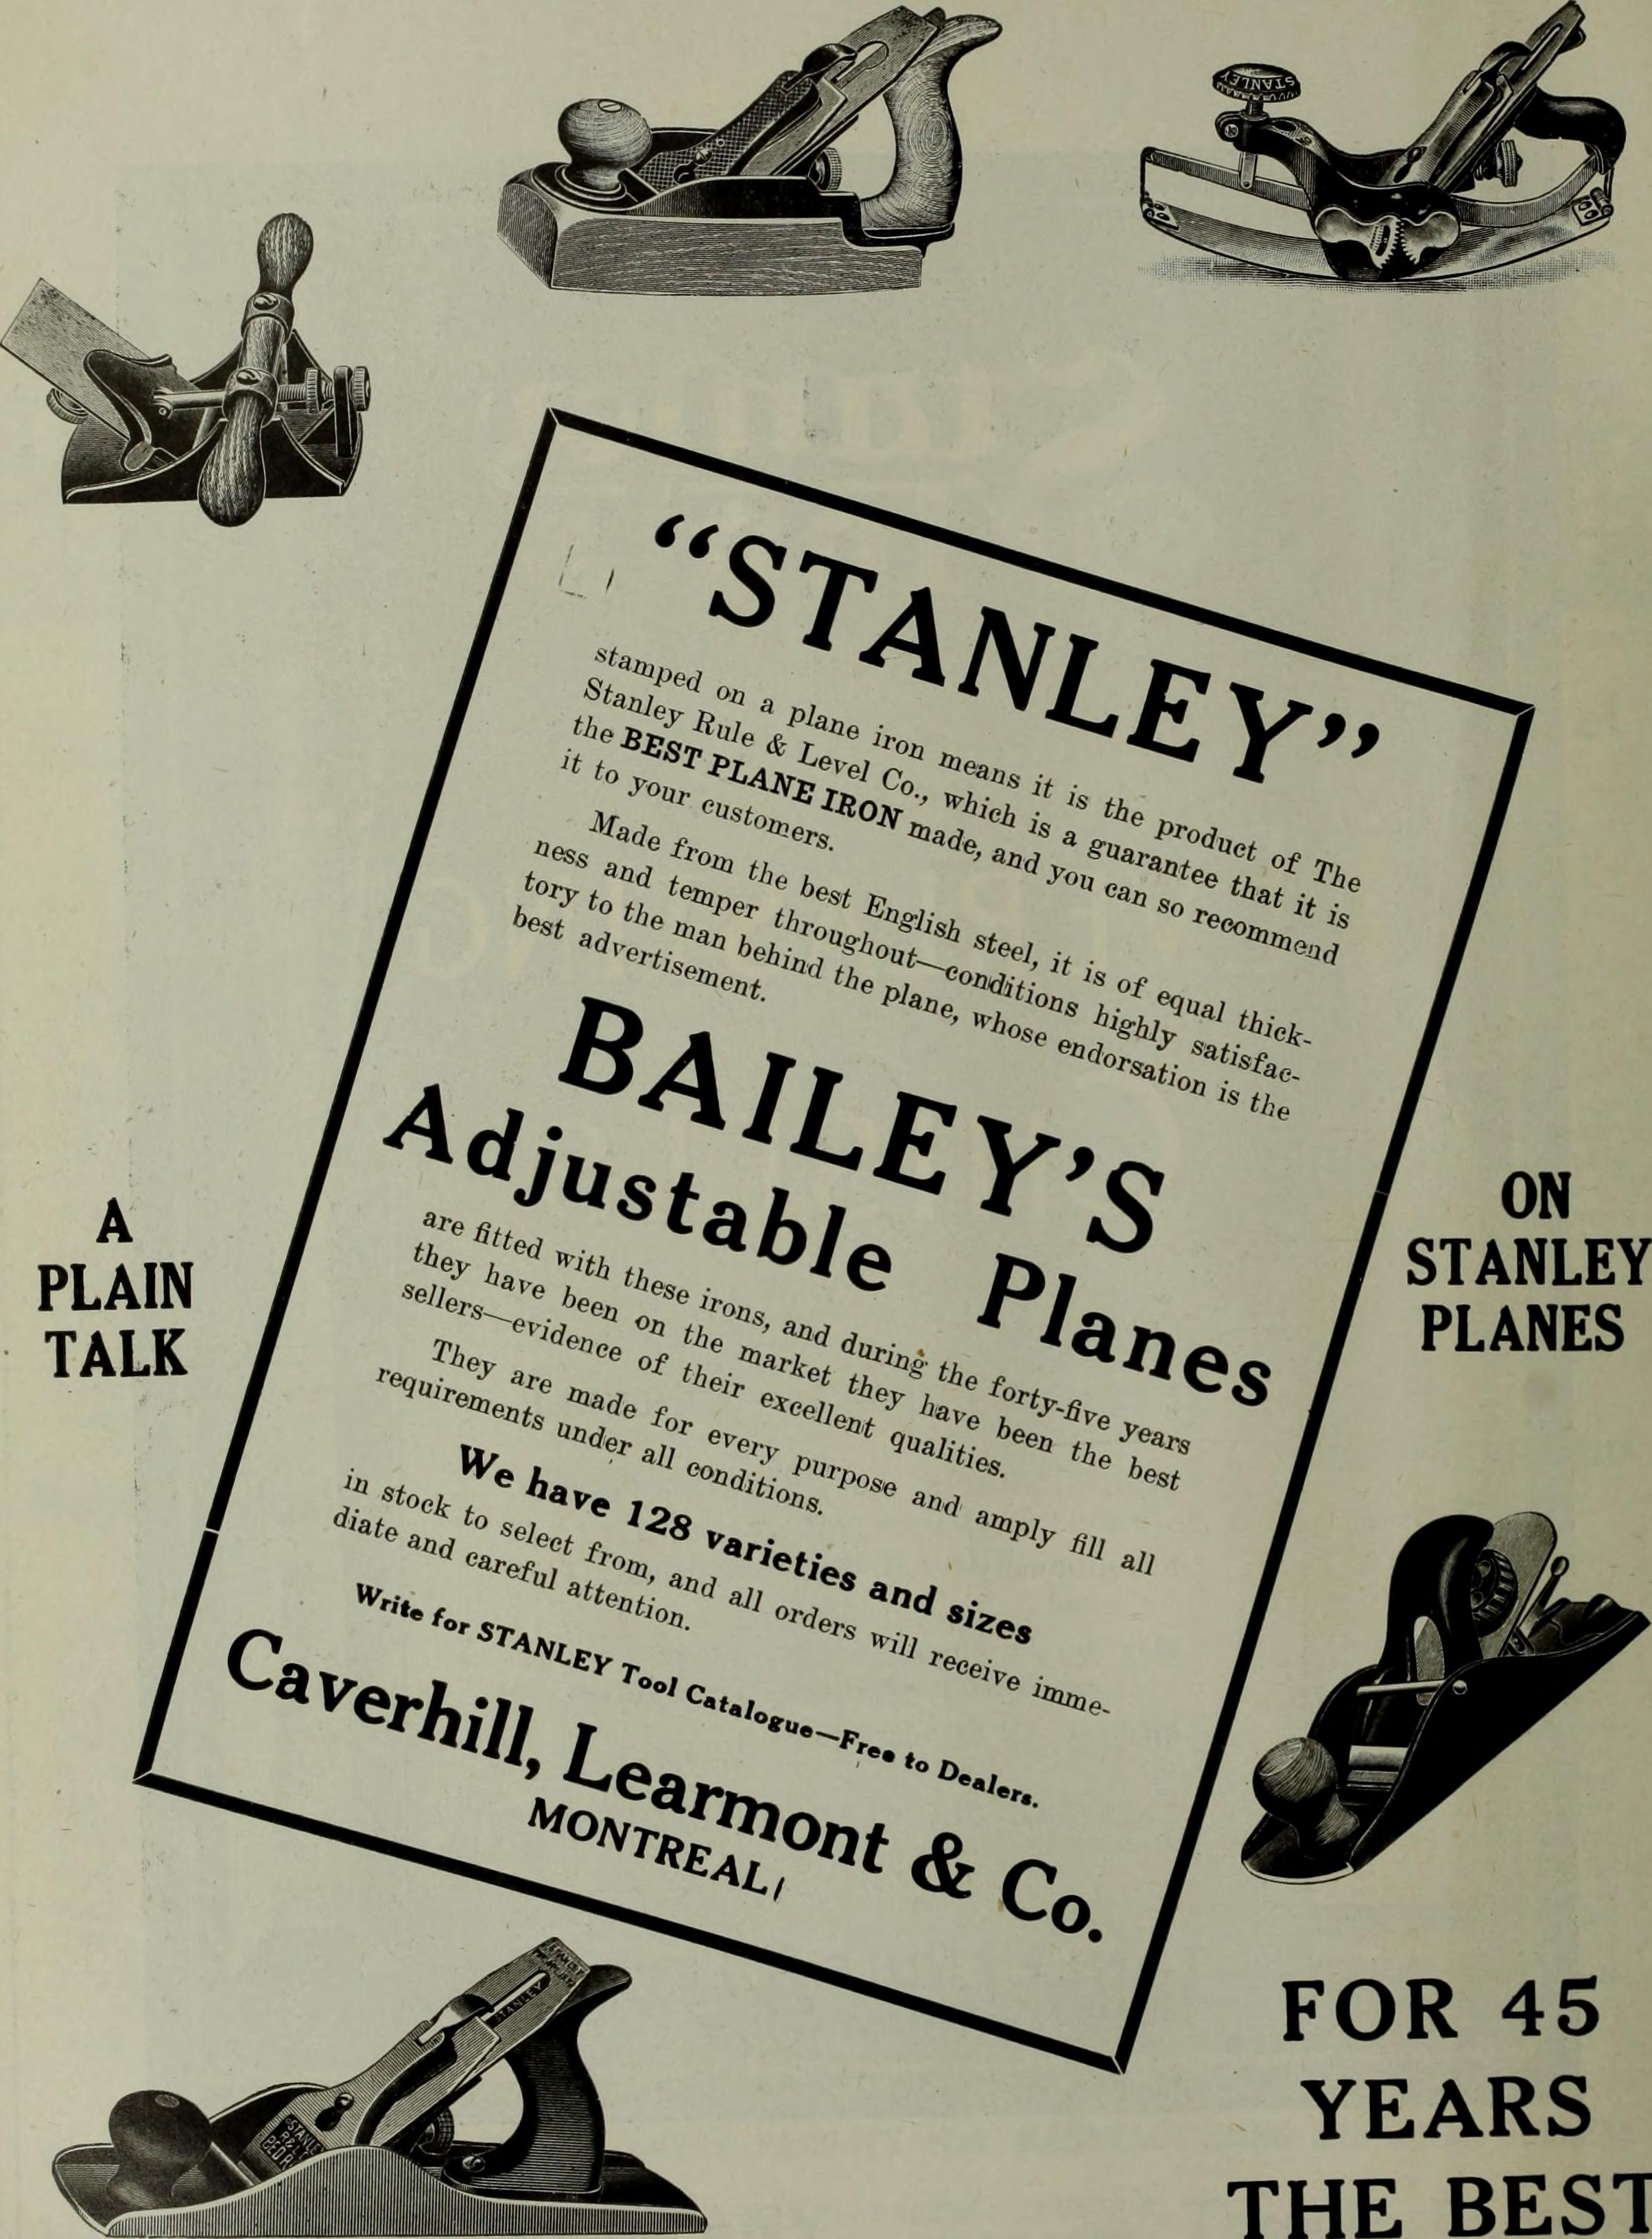 Dating english made stanley planes